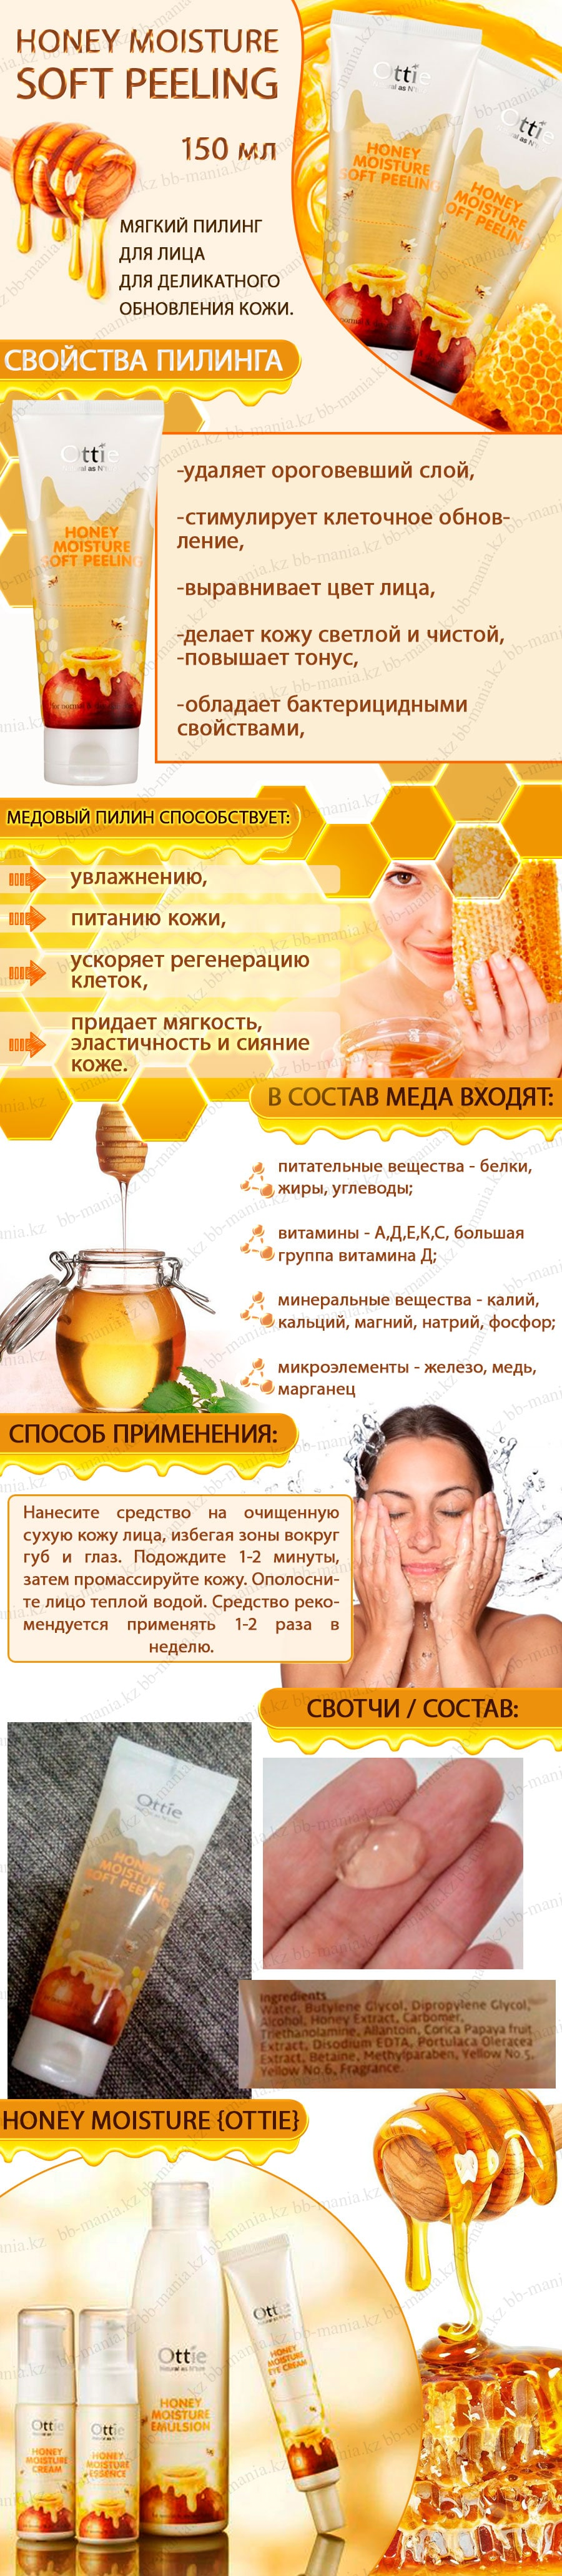 Honey-Moisture-Soft-Peeling-[Ottie]-ос-min